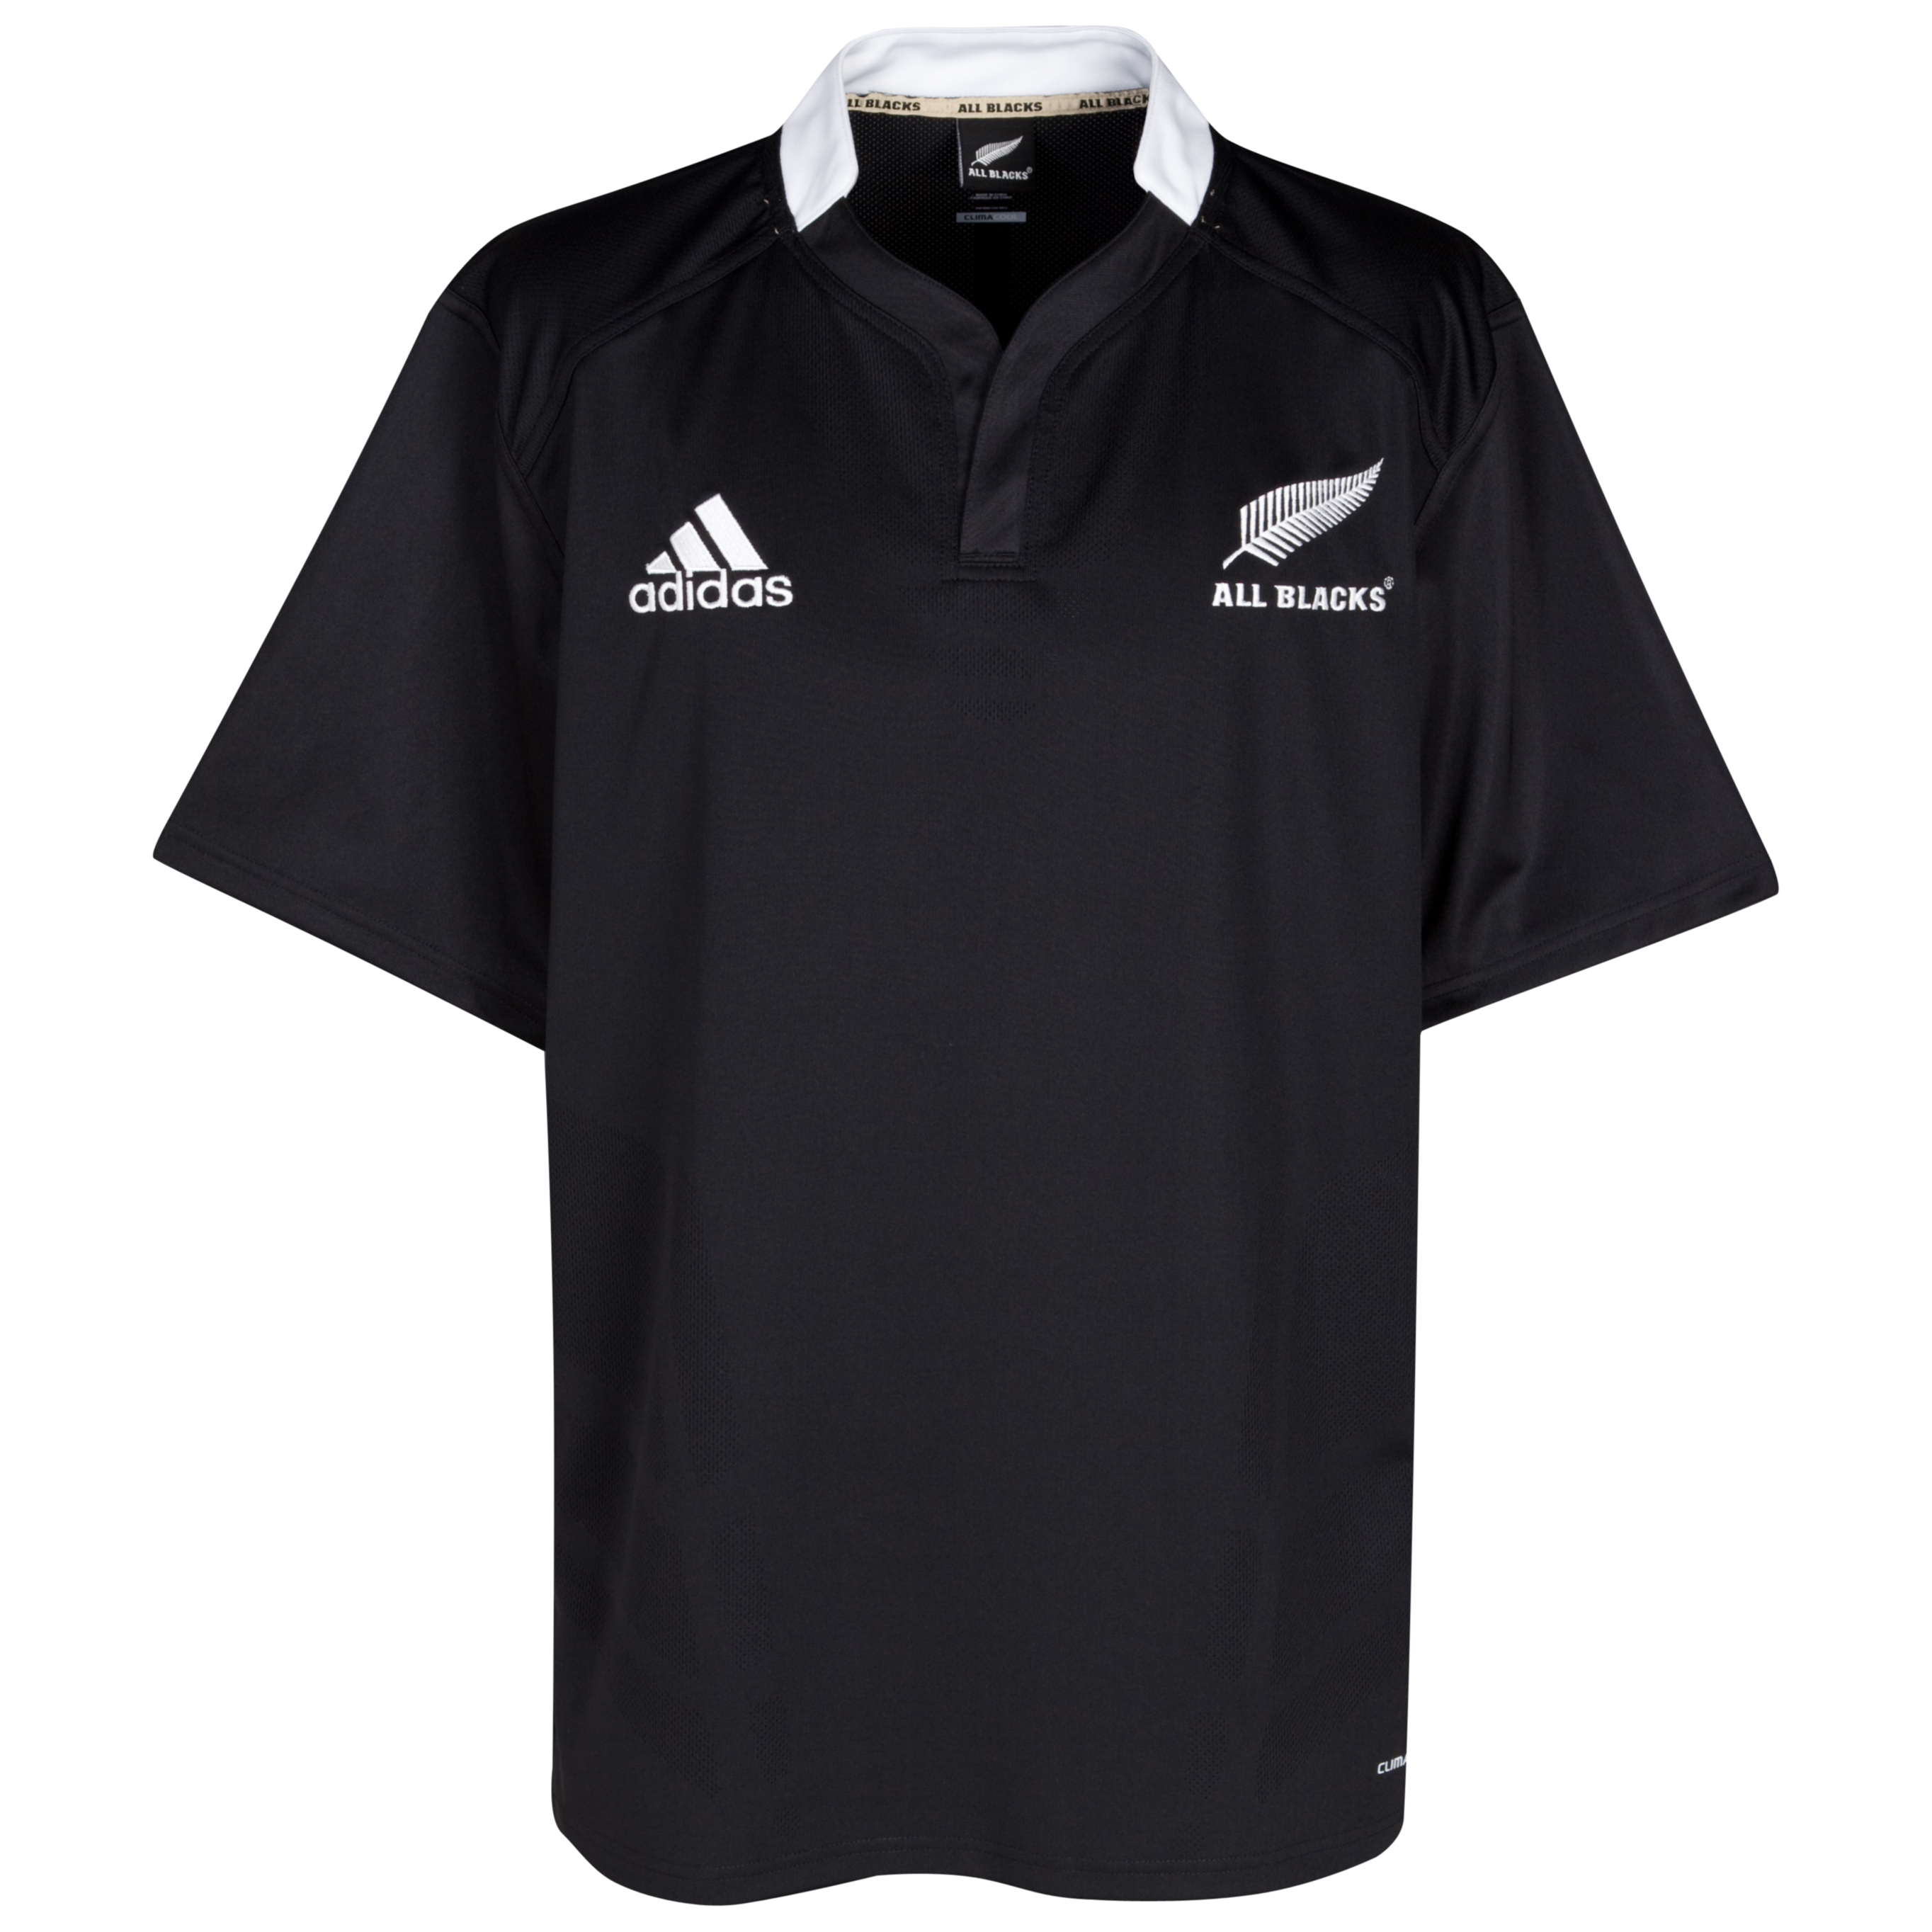 All Blacks Home Shirt 2011/13 - Black